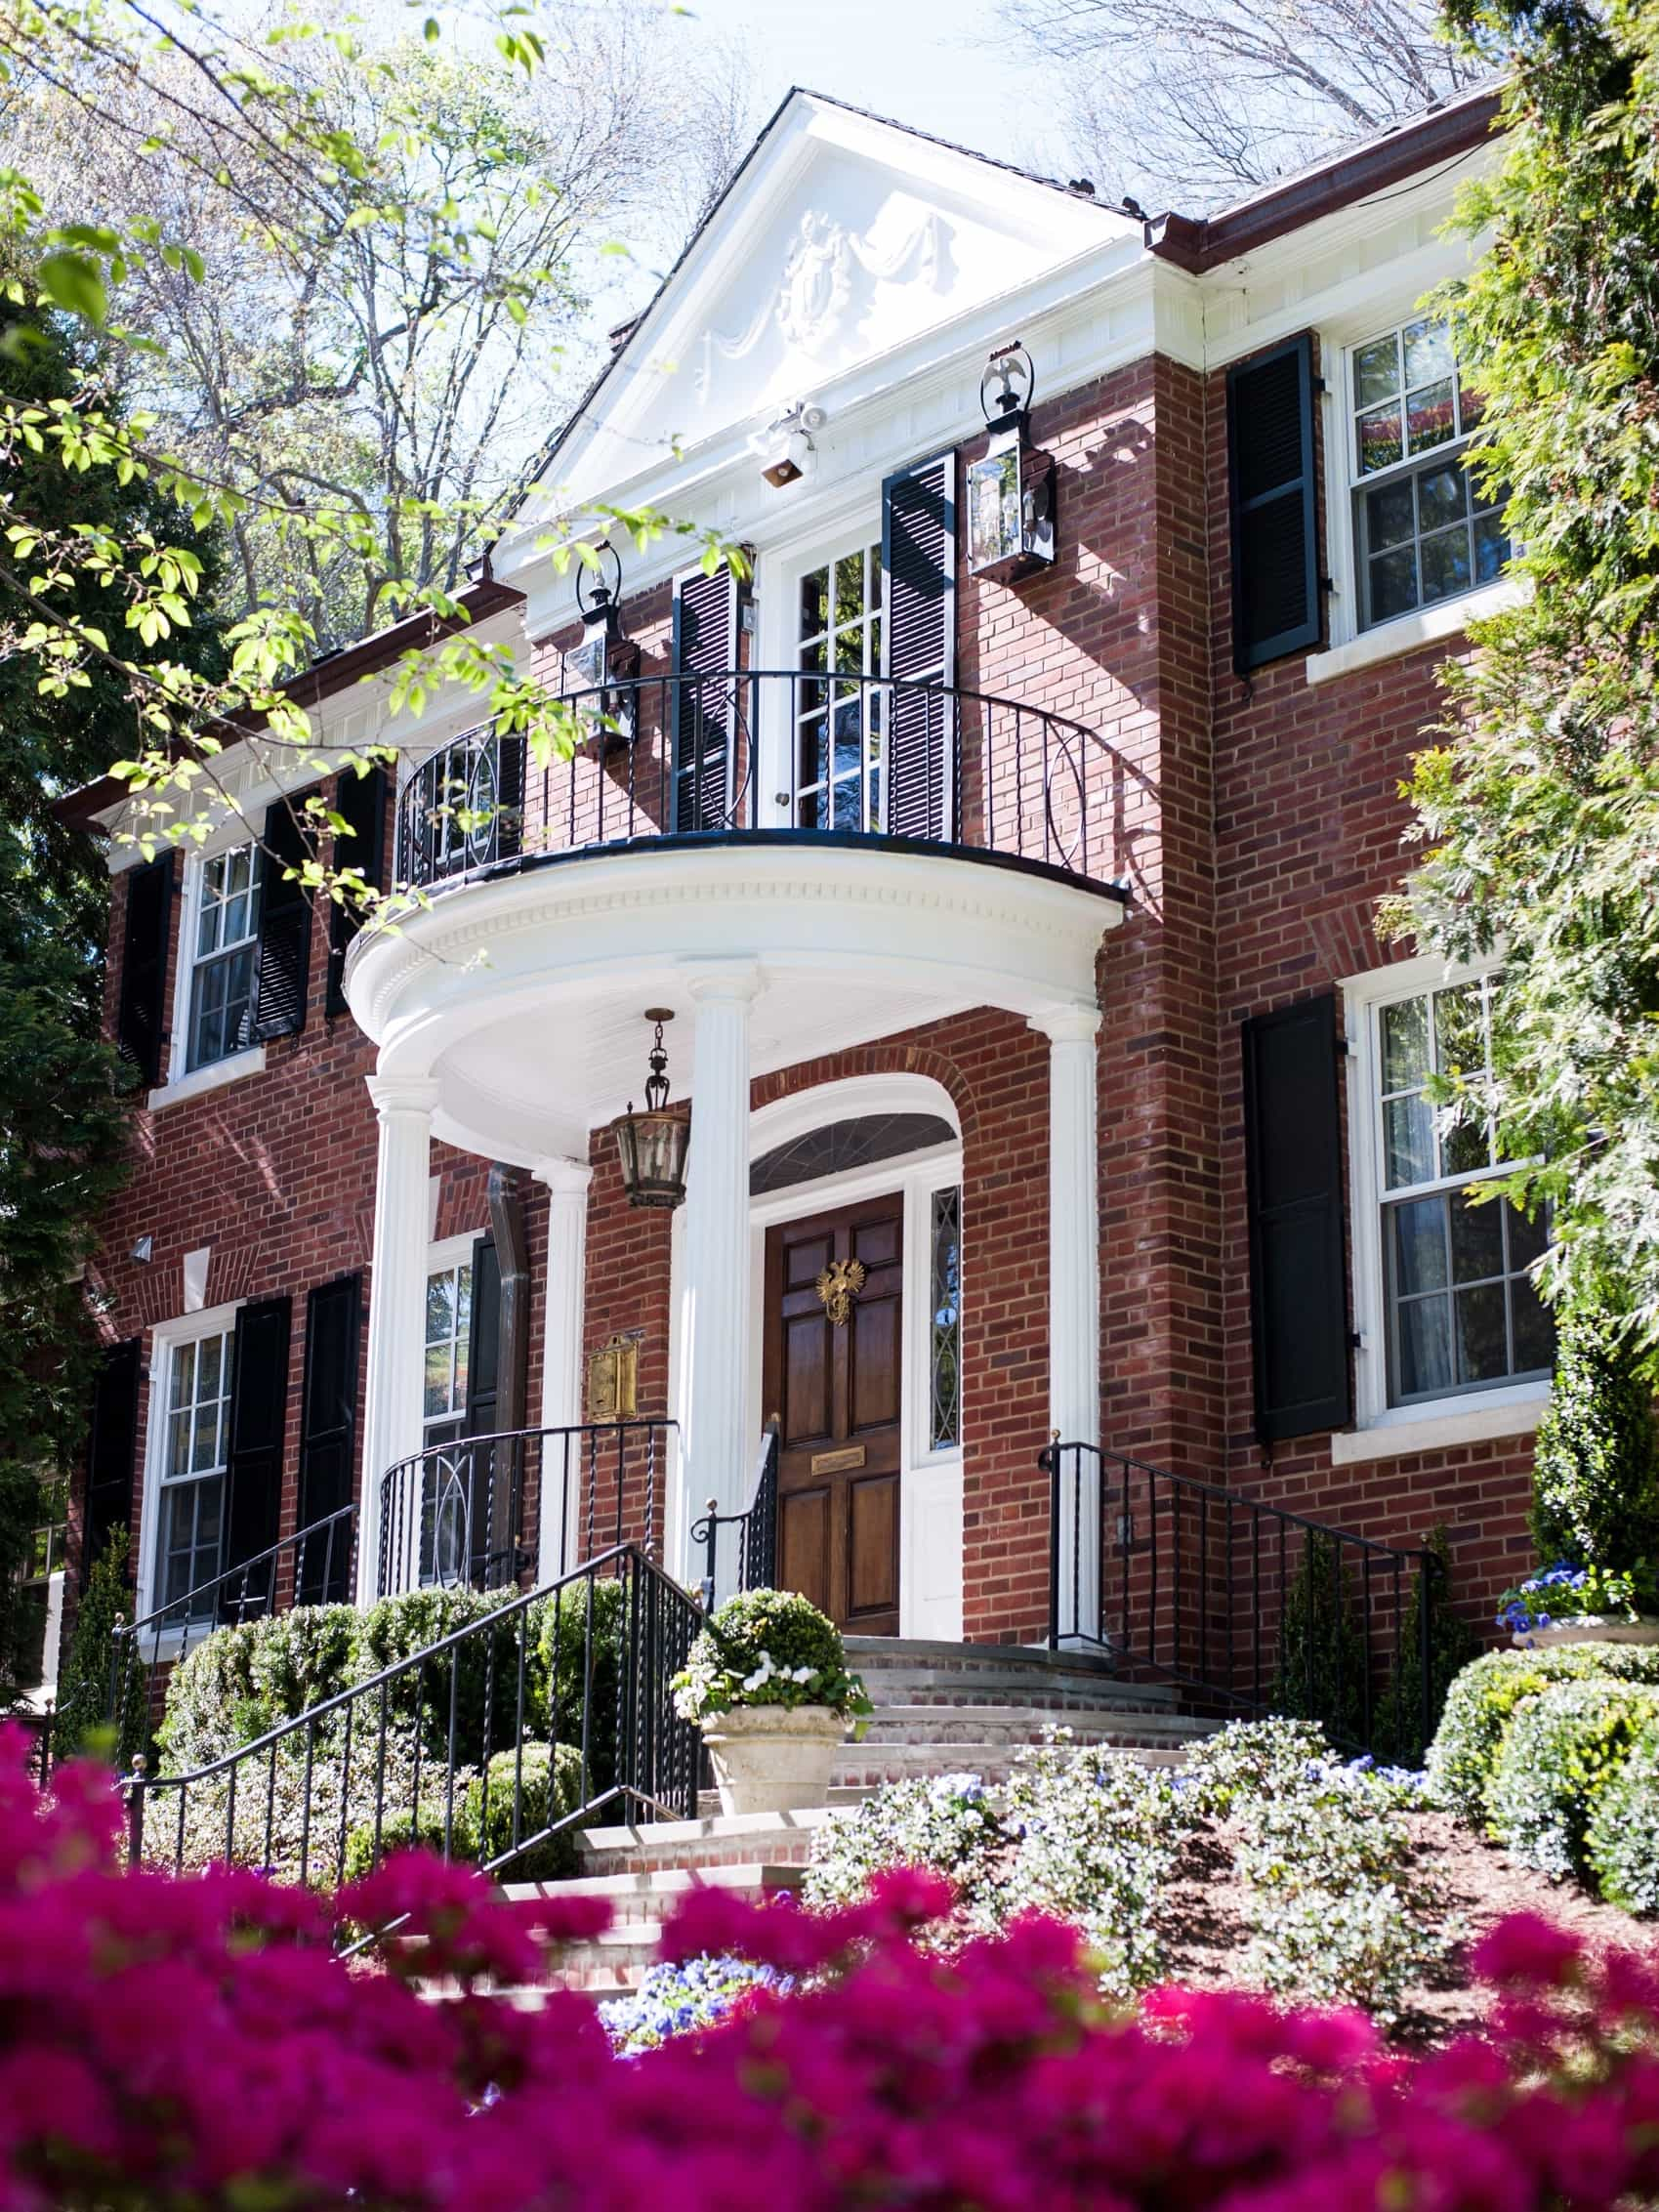 Featured Image of Brick Home Architecture With White Columns And Balcony